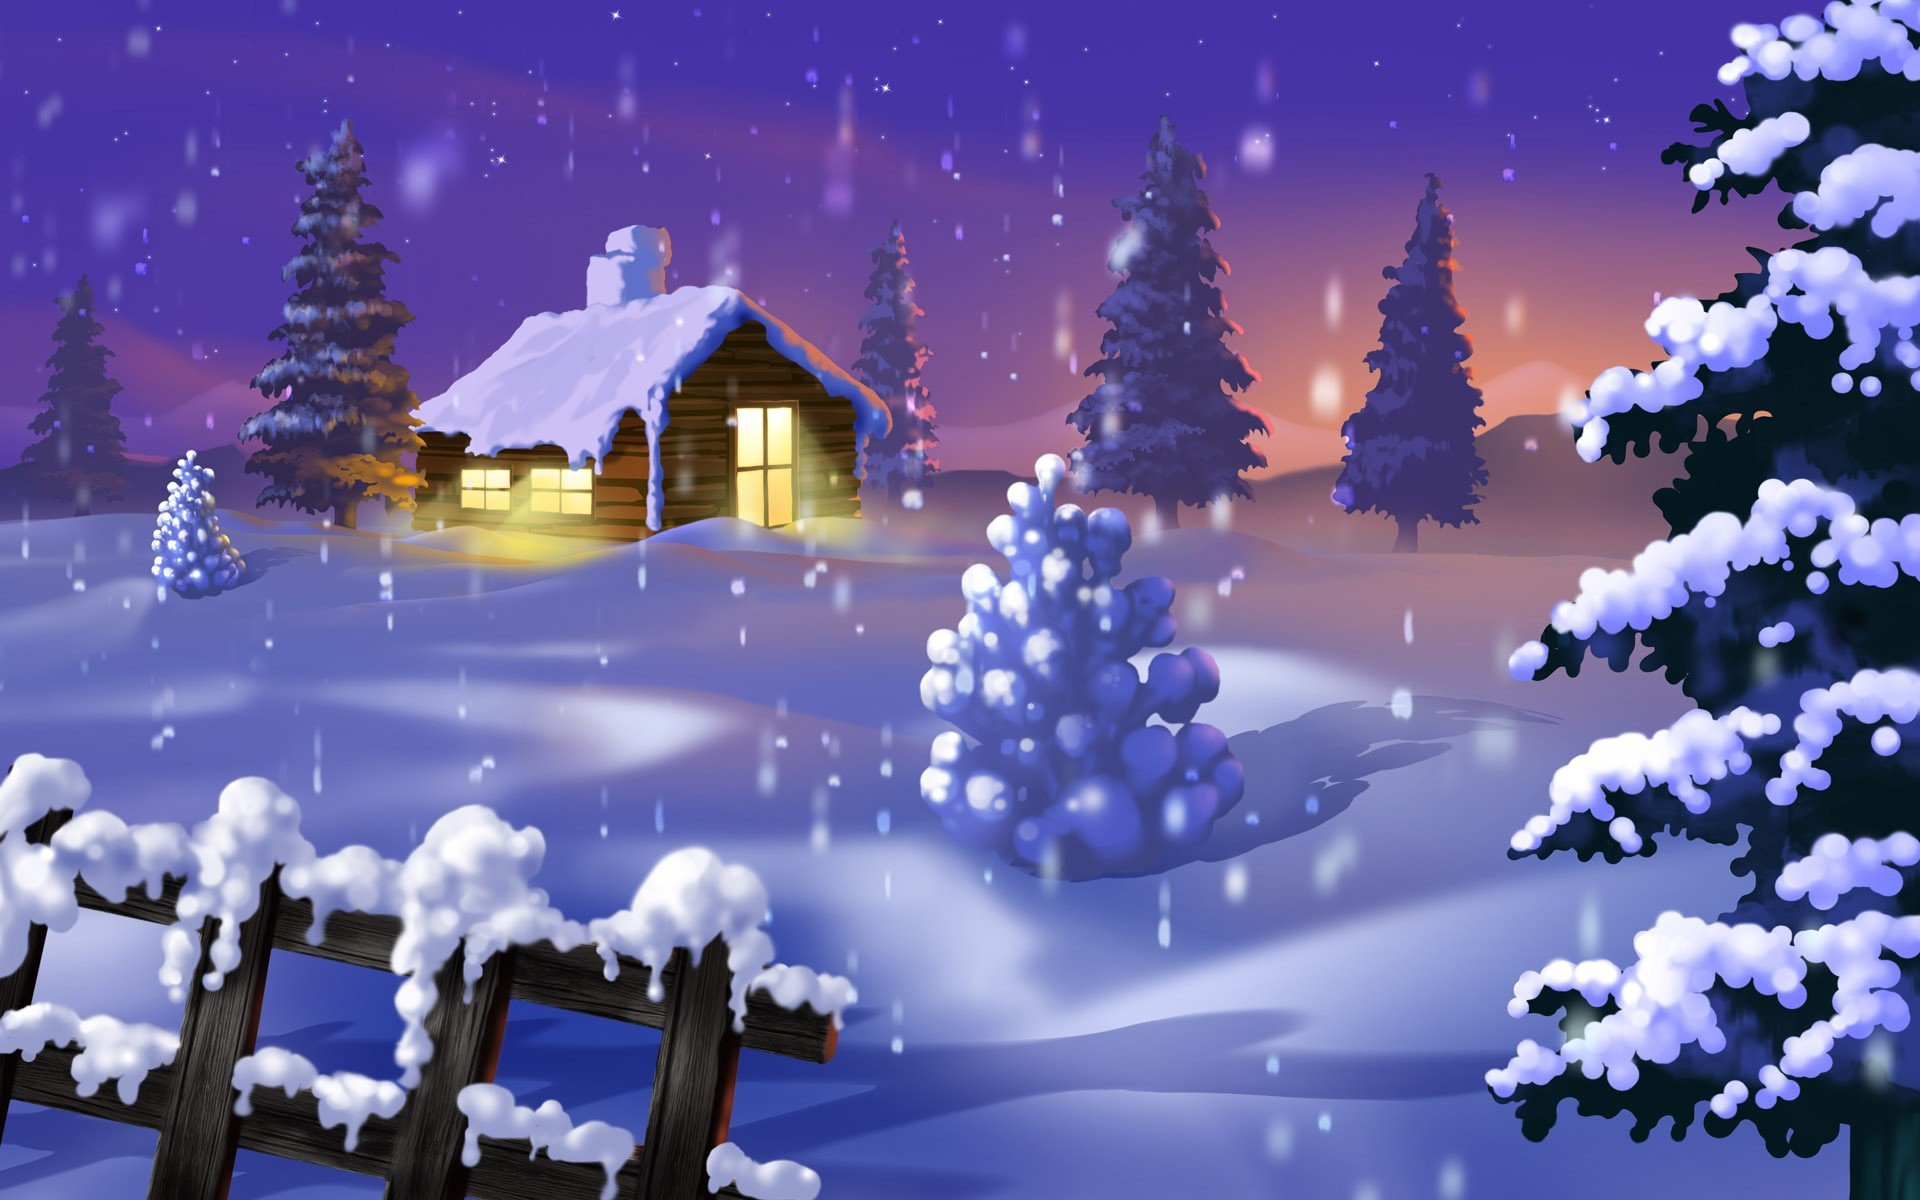 Top 7 beautiful winter snow live wallpapers for android for Holiday themed facebook cover photos